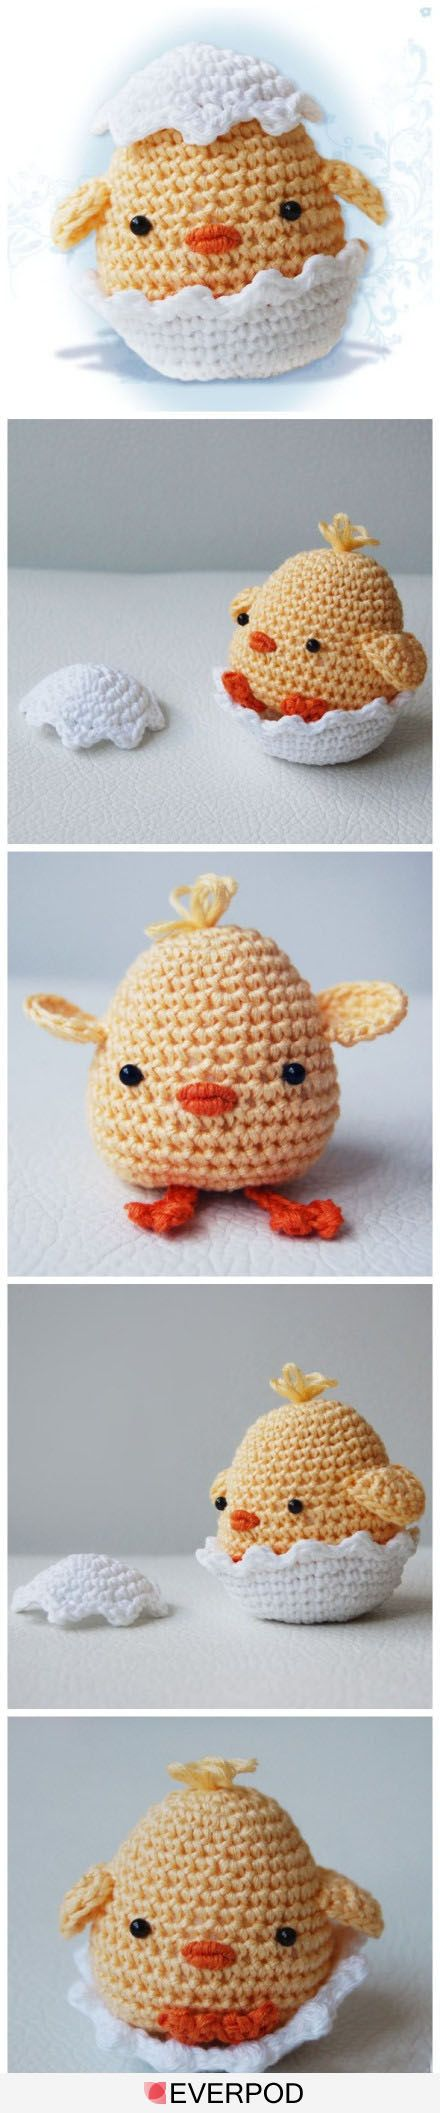 such a cute crochet chick!